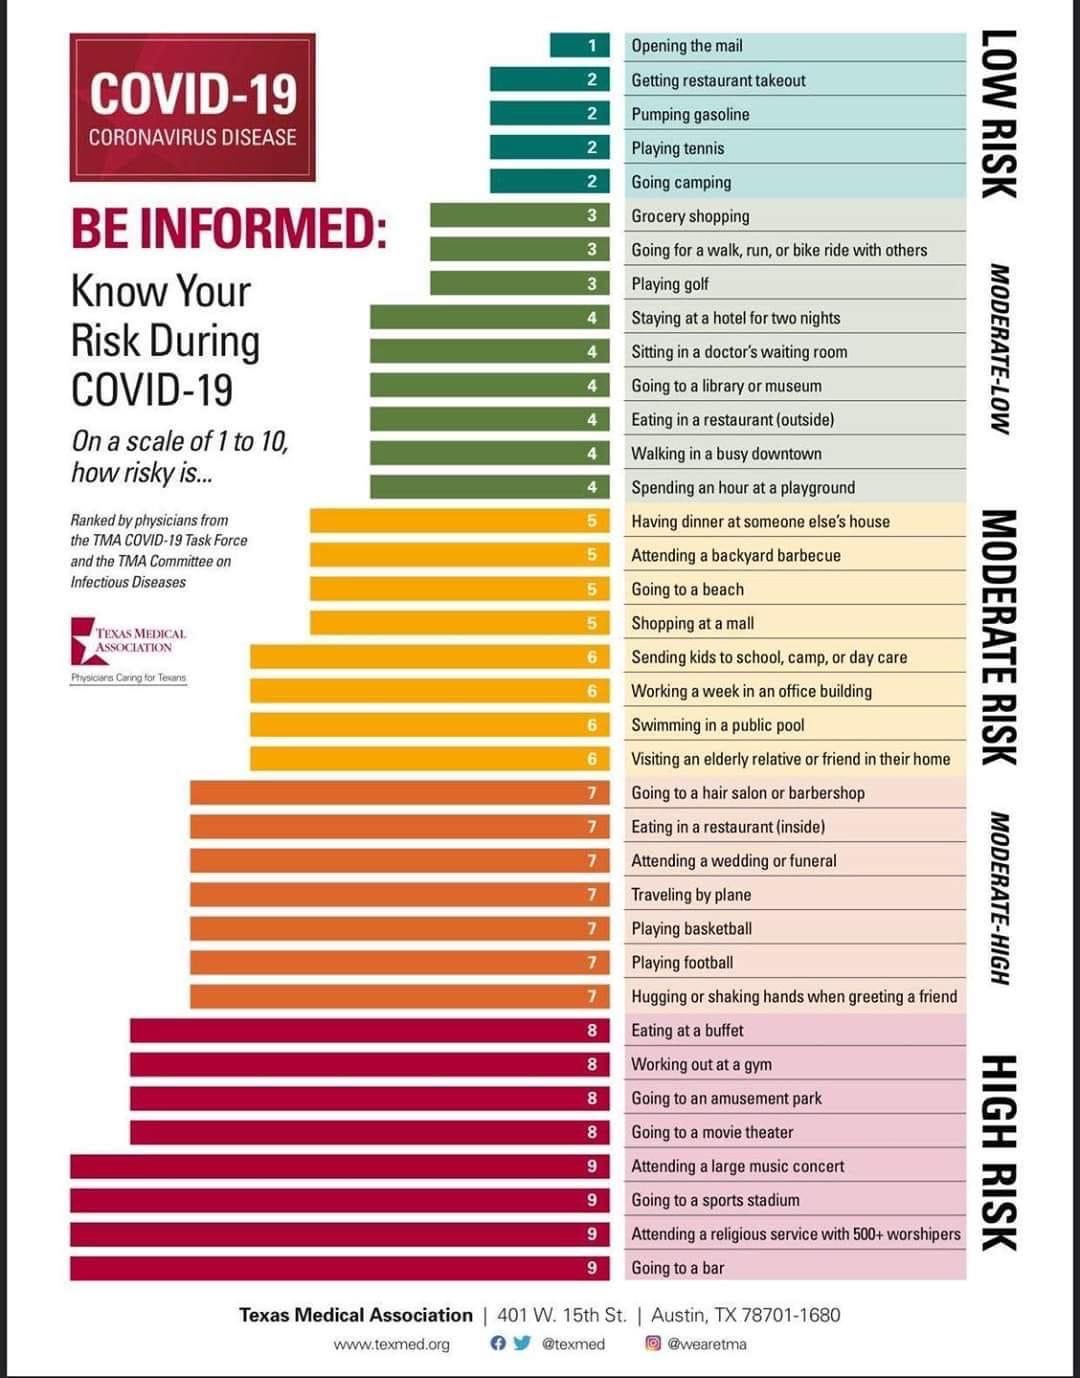 Covid-19 Activities and Risk Map